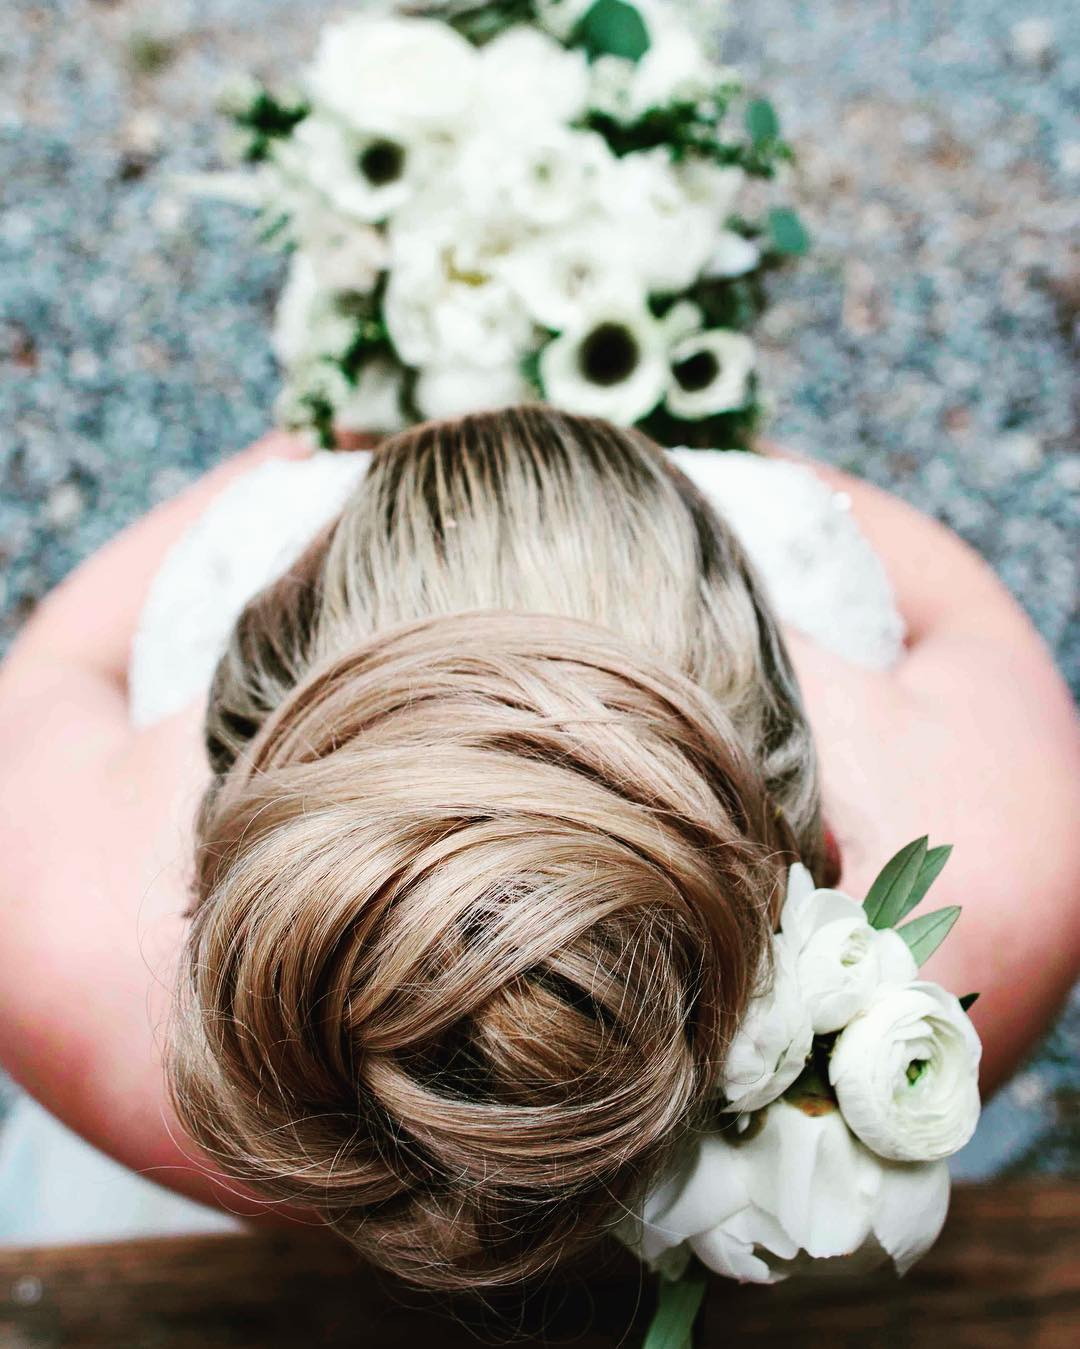 {LOVE this bun} #casagrandephotography  #loveherhair #hairflowers #weddinghair #bouquet #hairdecor #weddingflorist #peonies #casagrandephotography